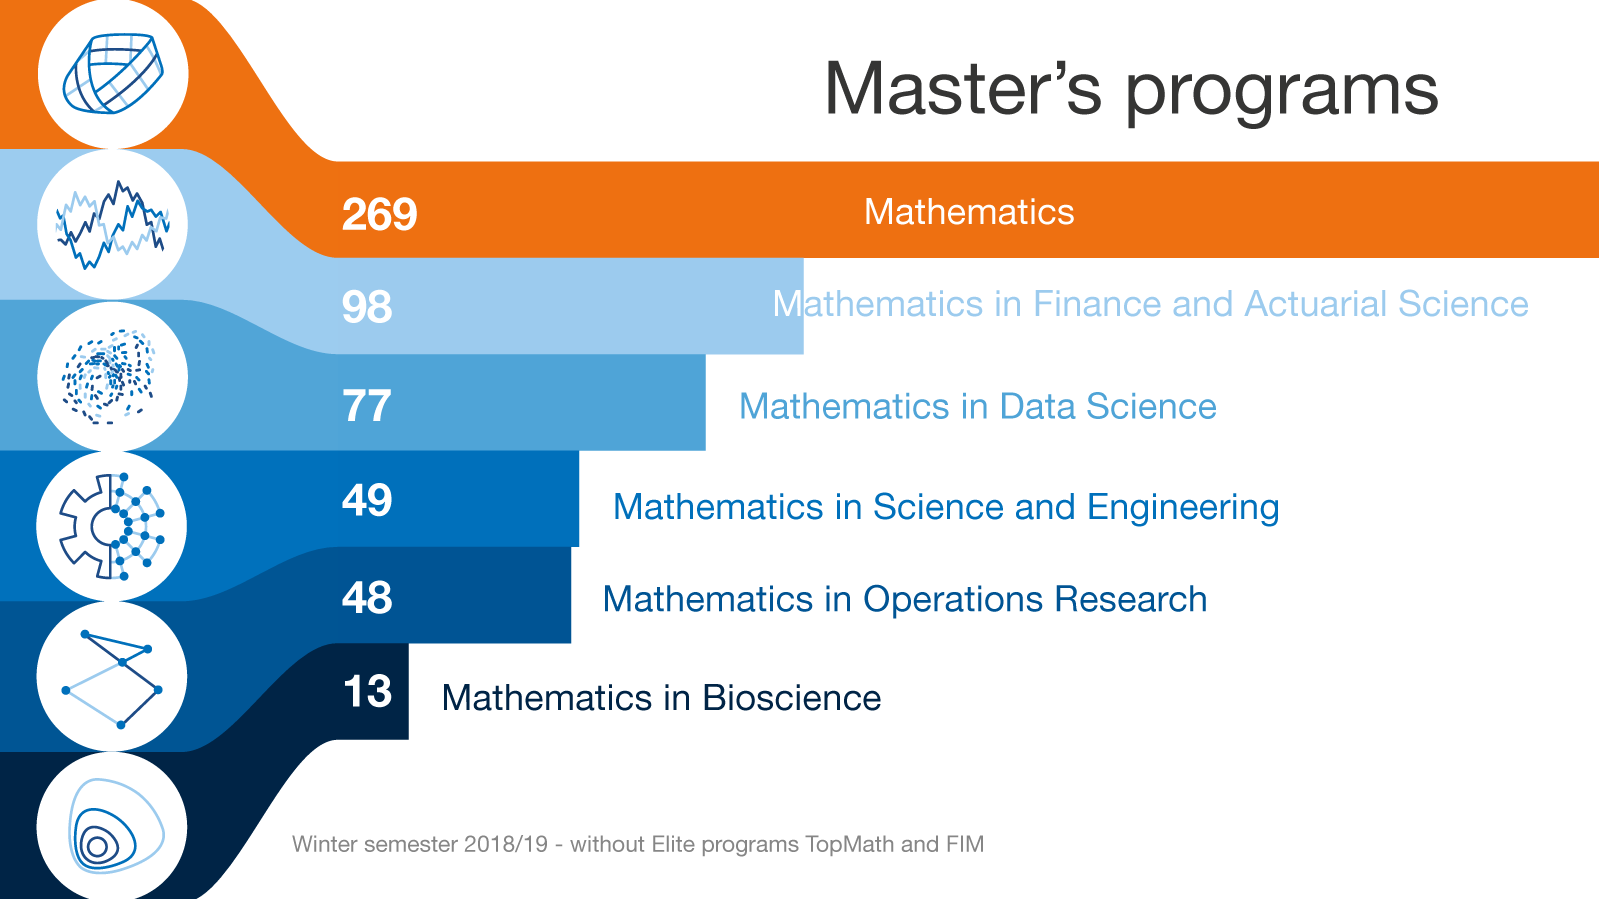 Infografic: numbers of students in master's programs of the TUM Department of mathematics